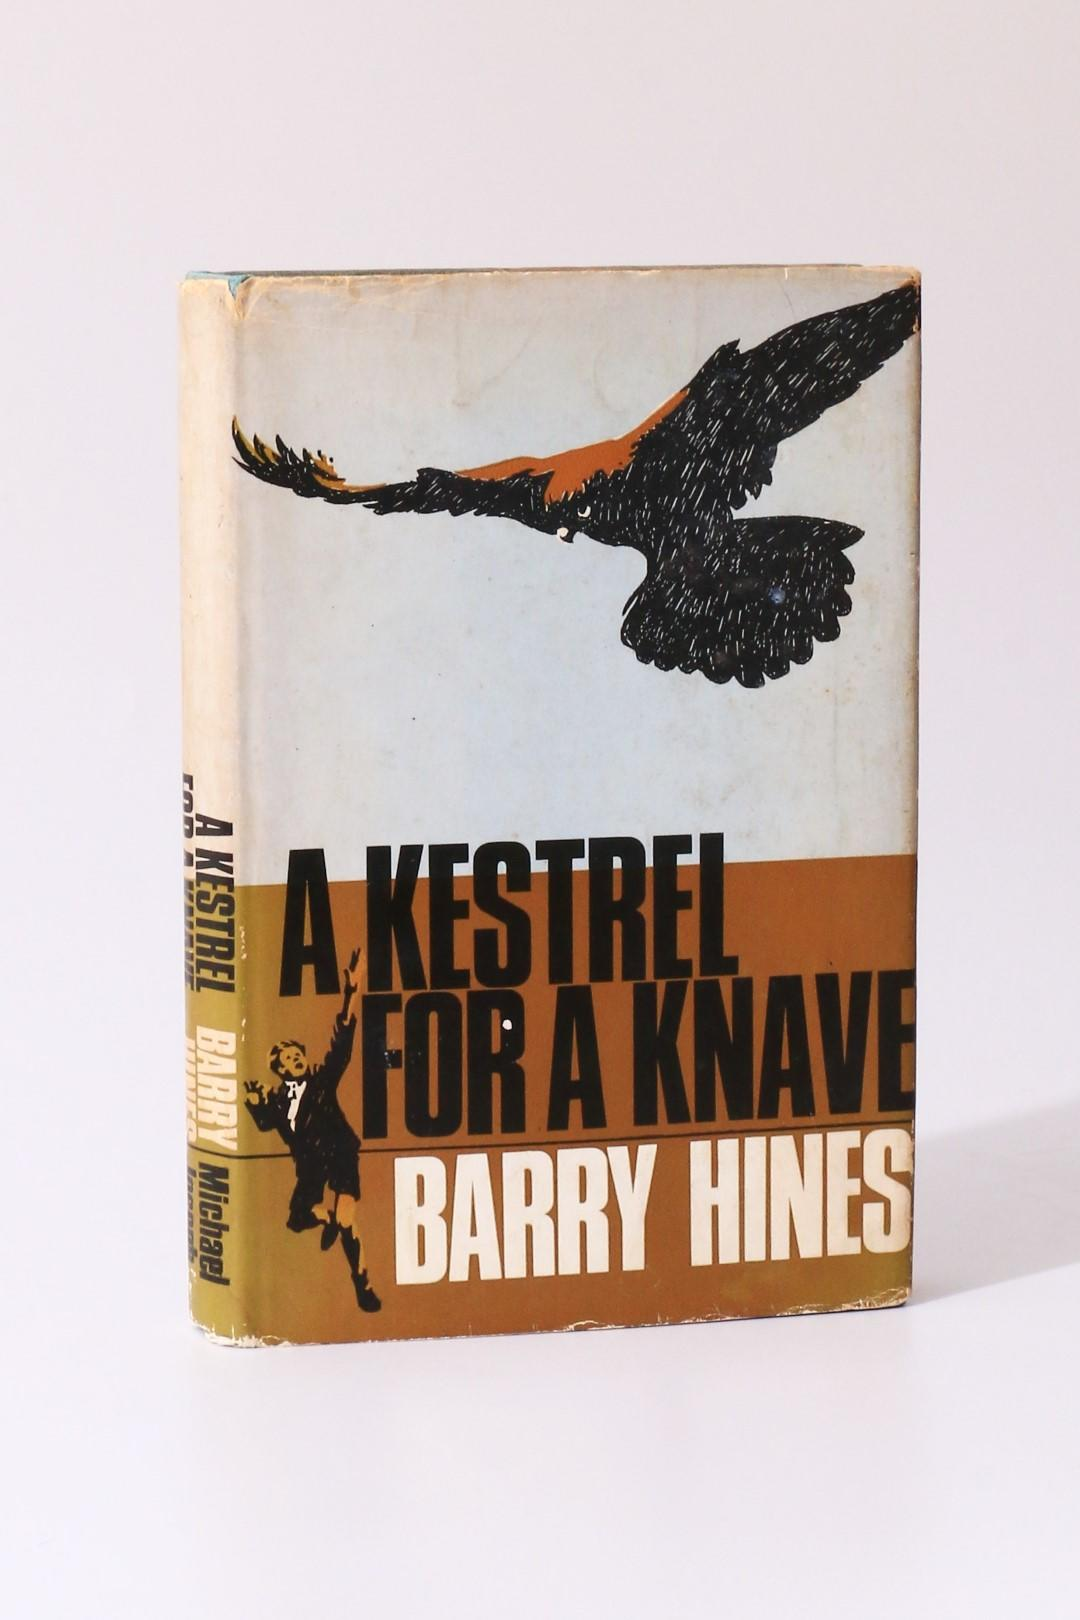 Barry Hines - A Kestrel for a Knave - Michael Joseph, 1968, First Edition.